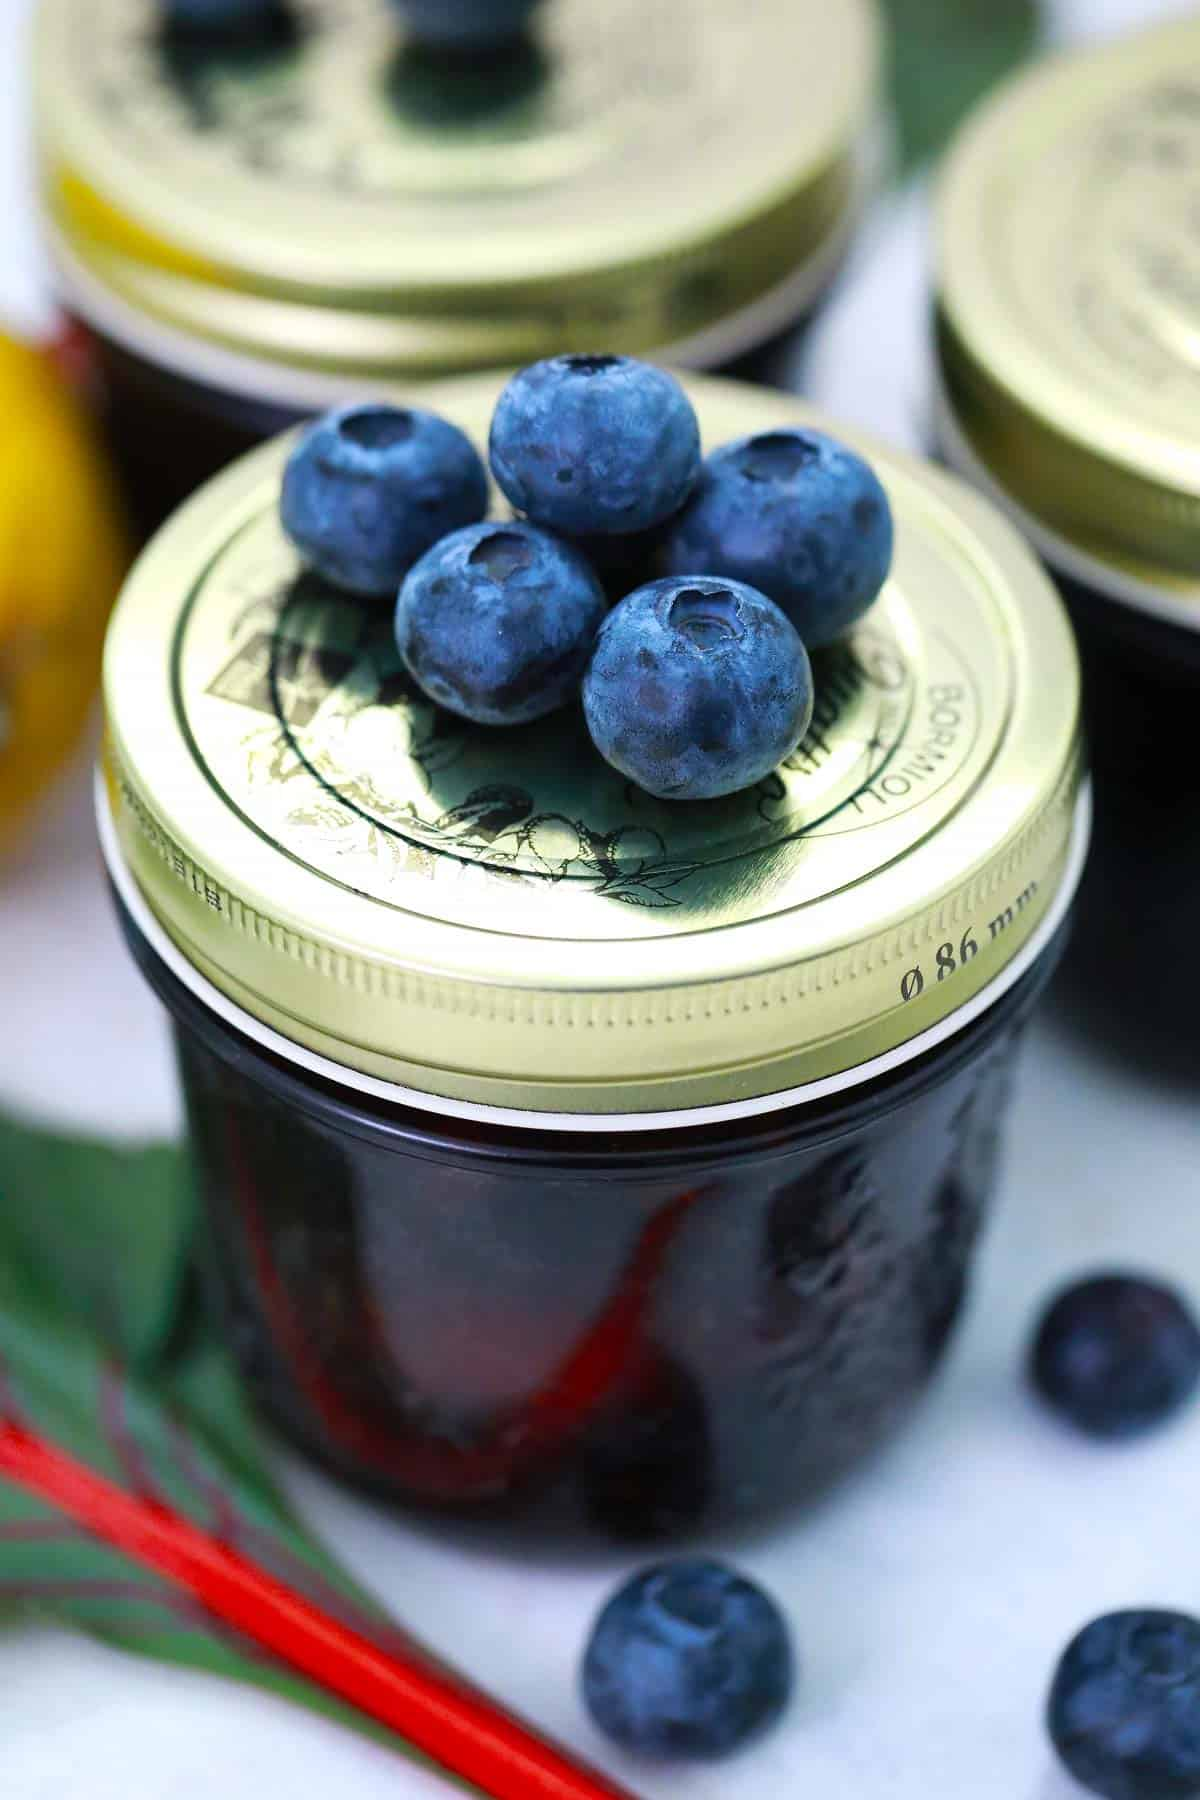 Jar of jam with blueberries no top